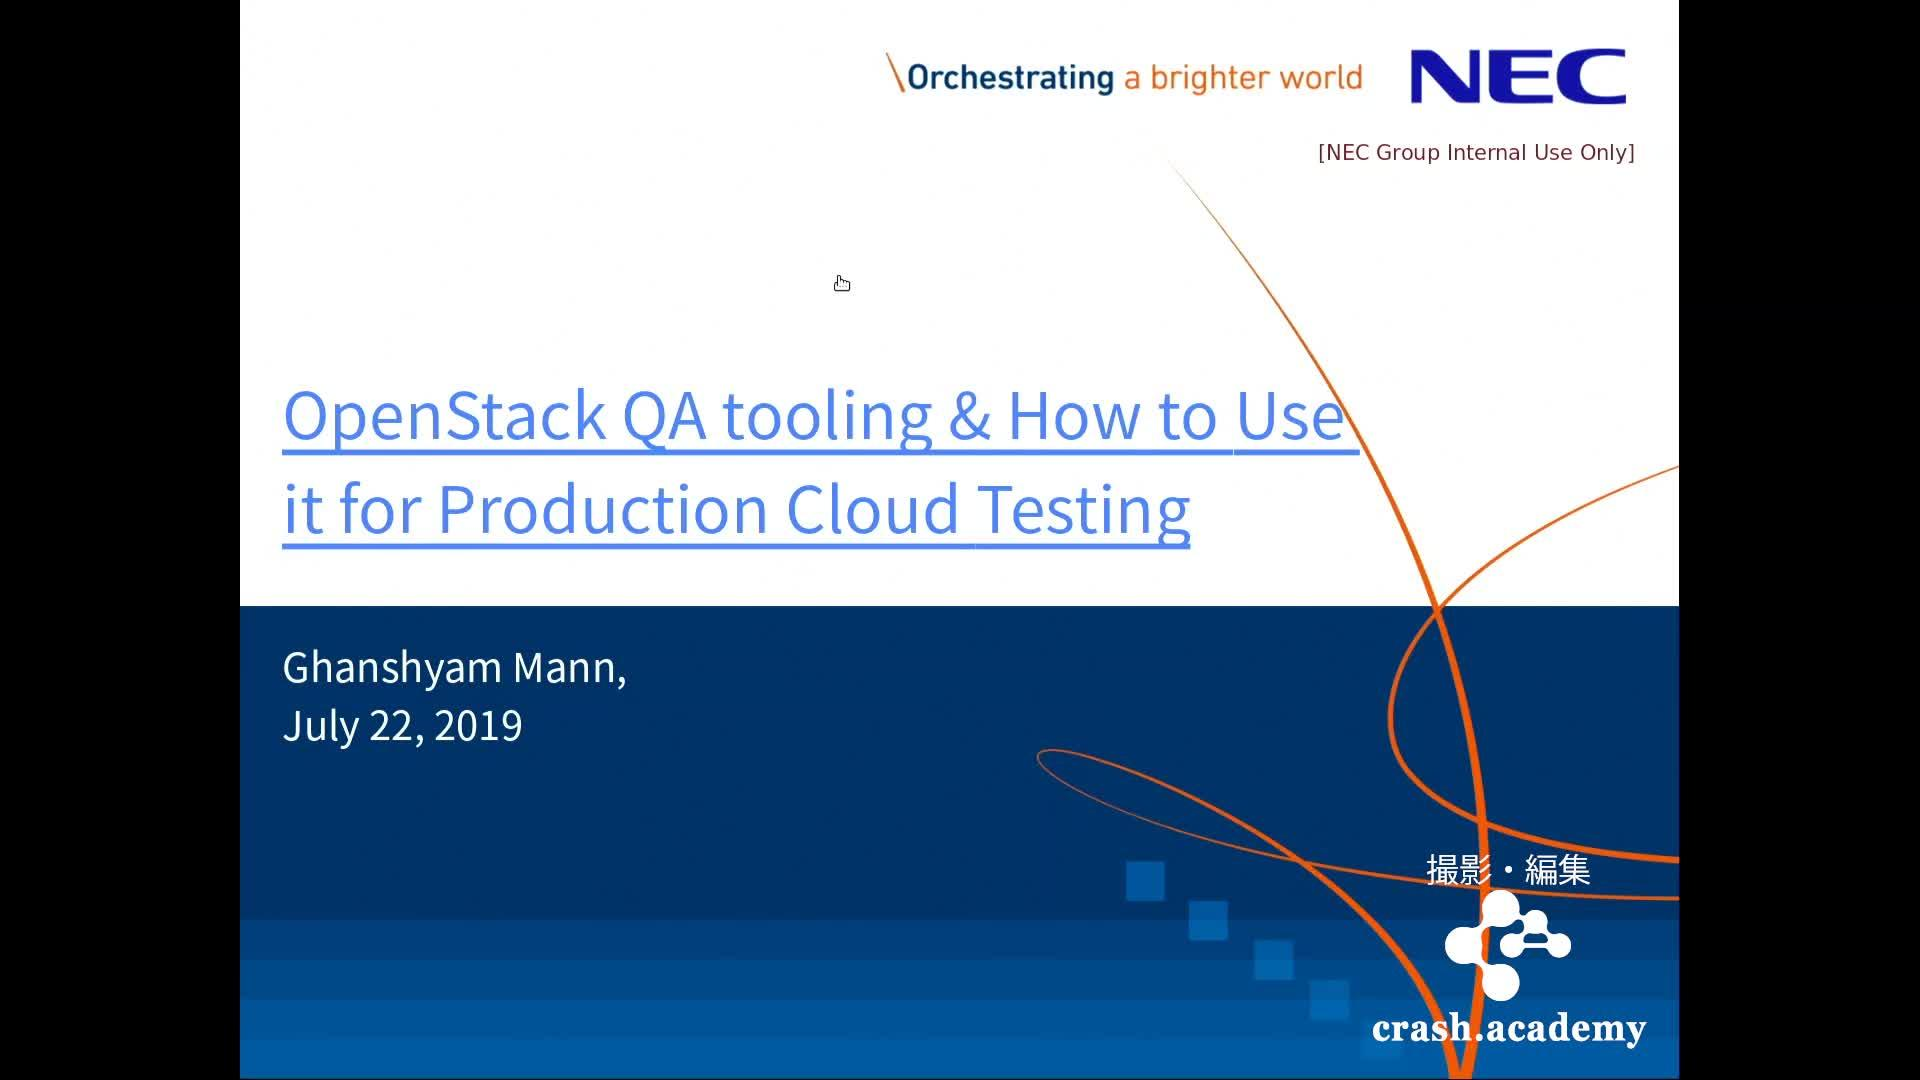 OpenStack QA tooling & How to use it for Production Cloud testing